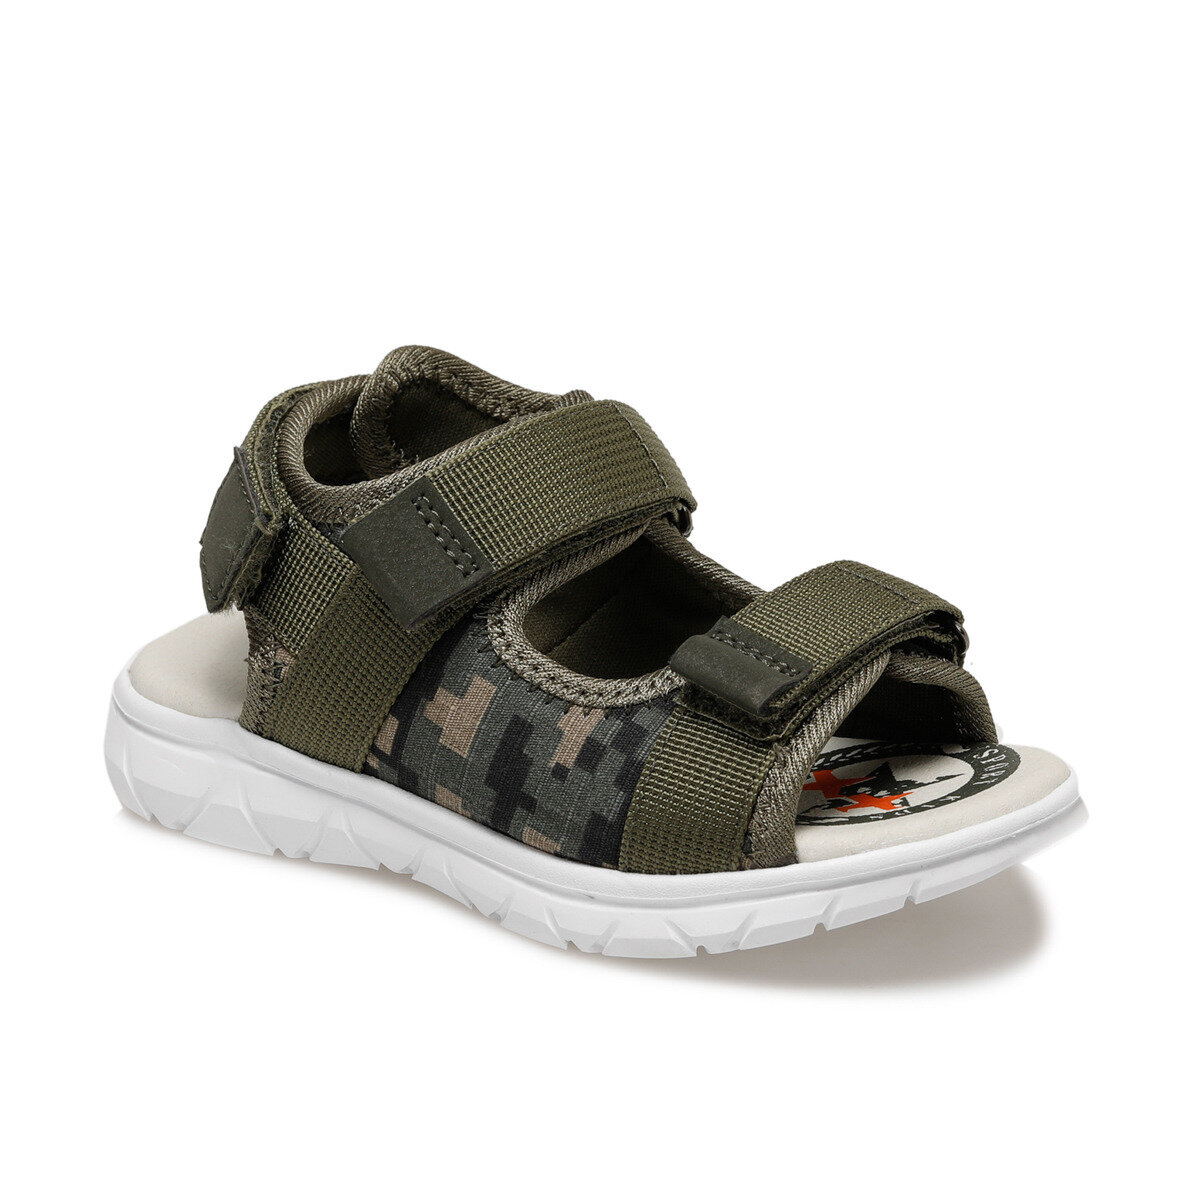 FLO 512660.F Khaki Male Child Sandals Polaris